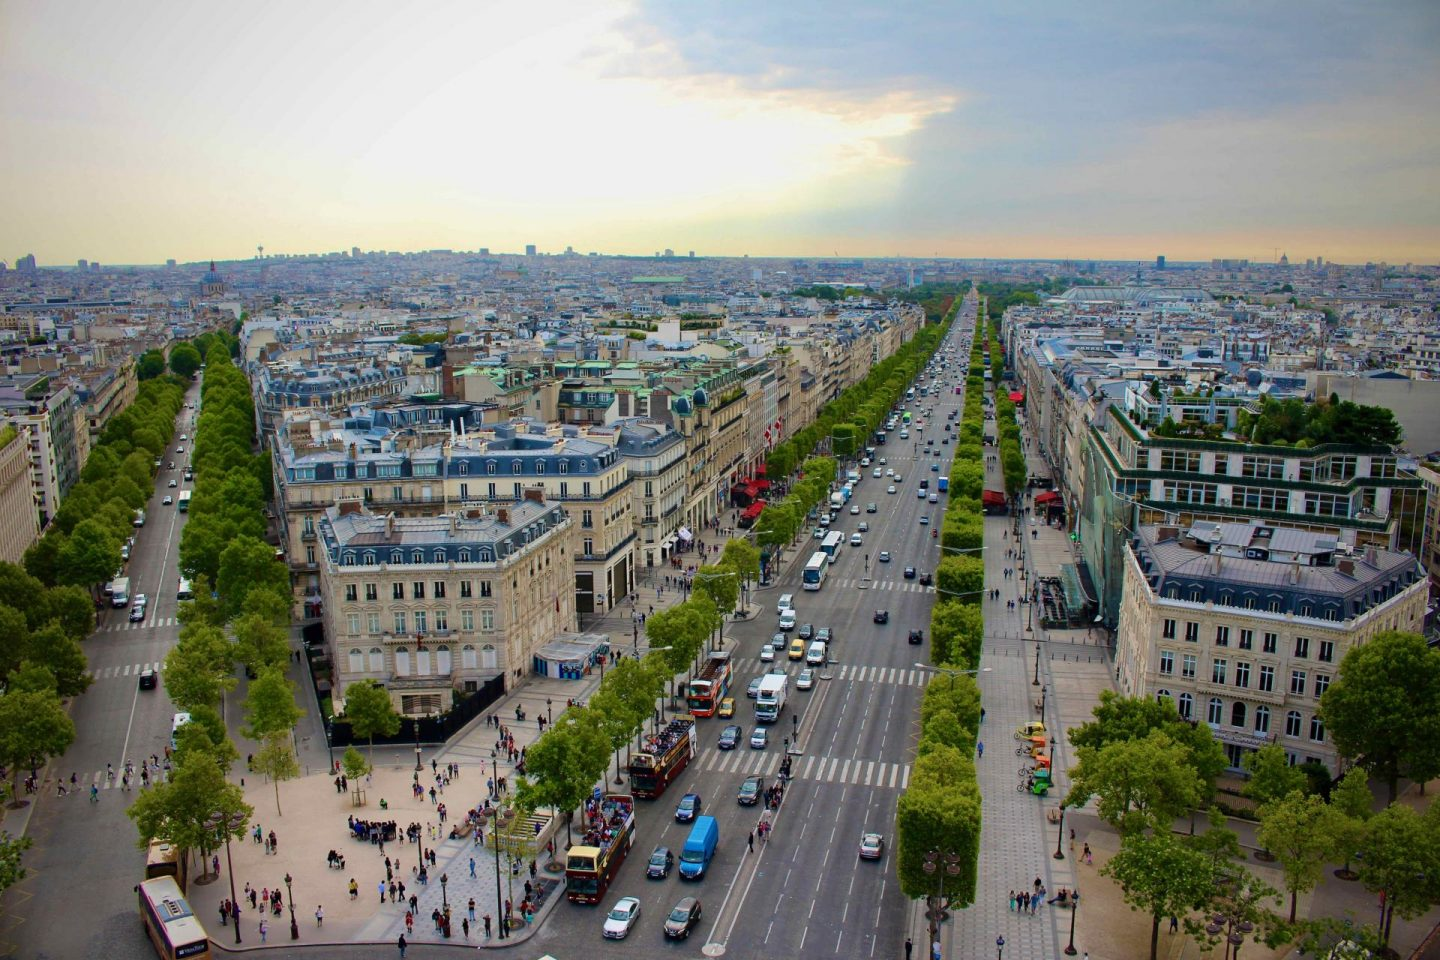 Strolling the Champs-Elysées in Paris | The Spectacular Adventurer